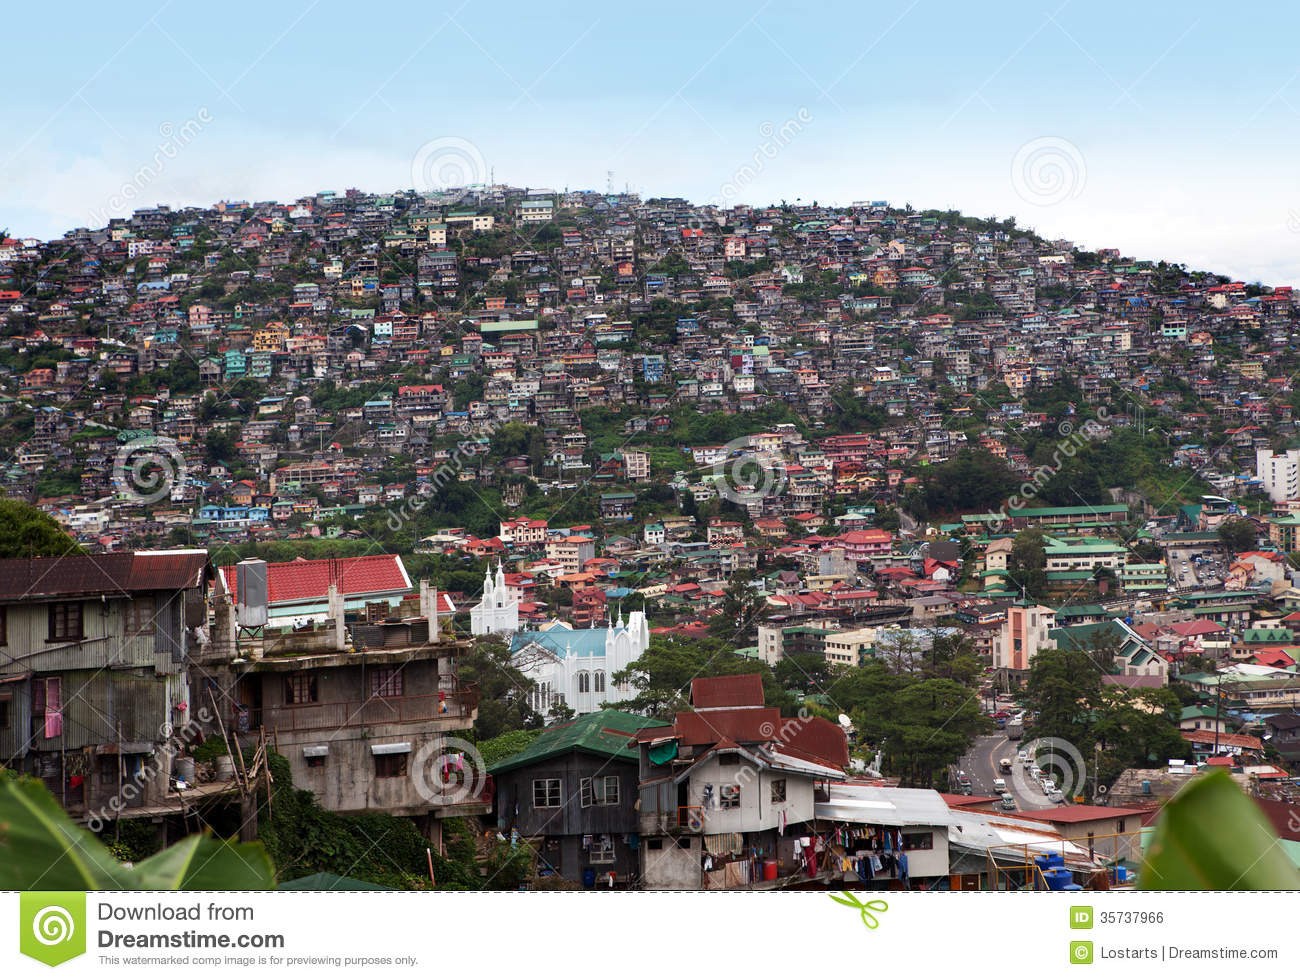 Baguio Philippines  city photos : Royalty Free Stock Image: Baguio Philippines Overpopulation. Image ...